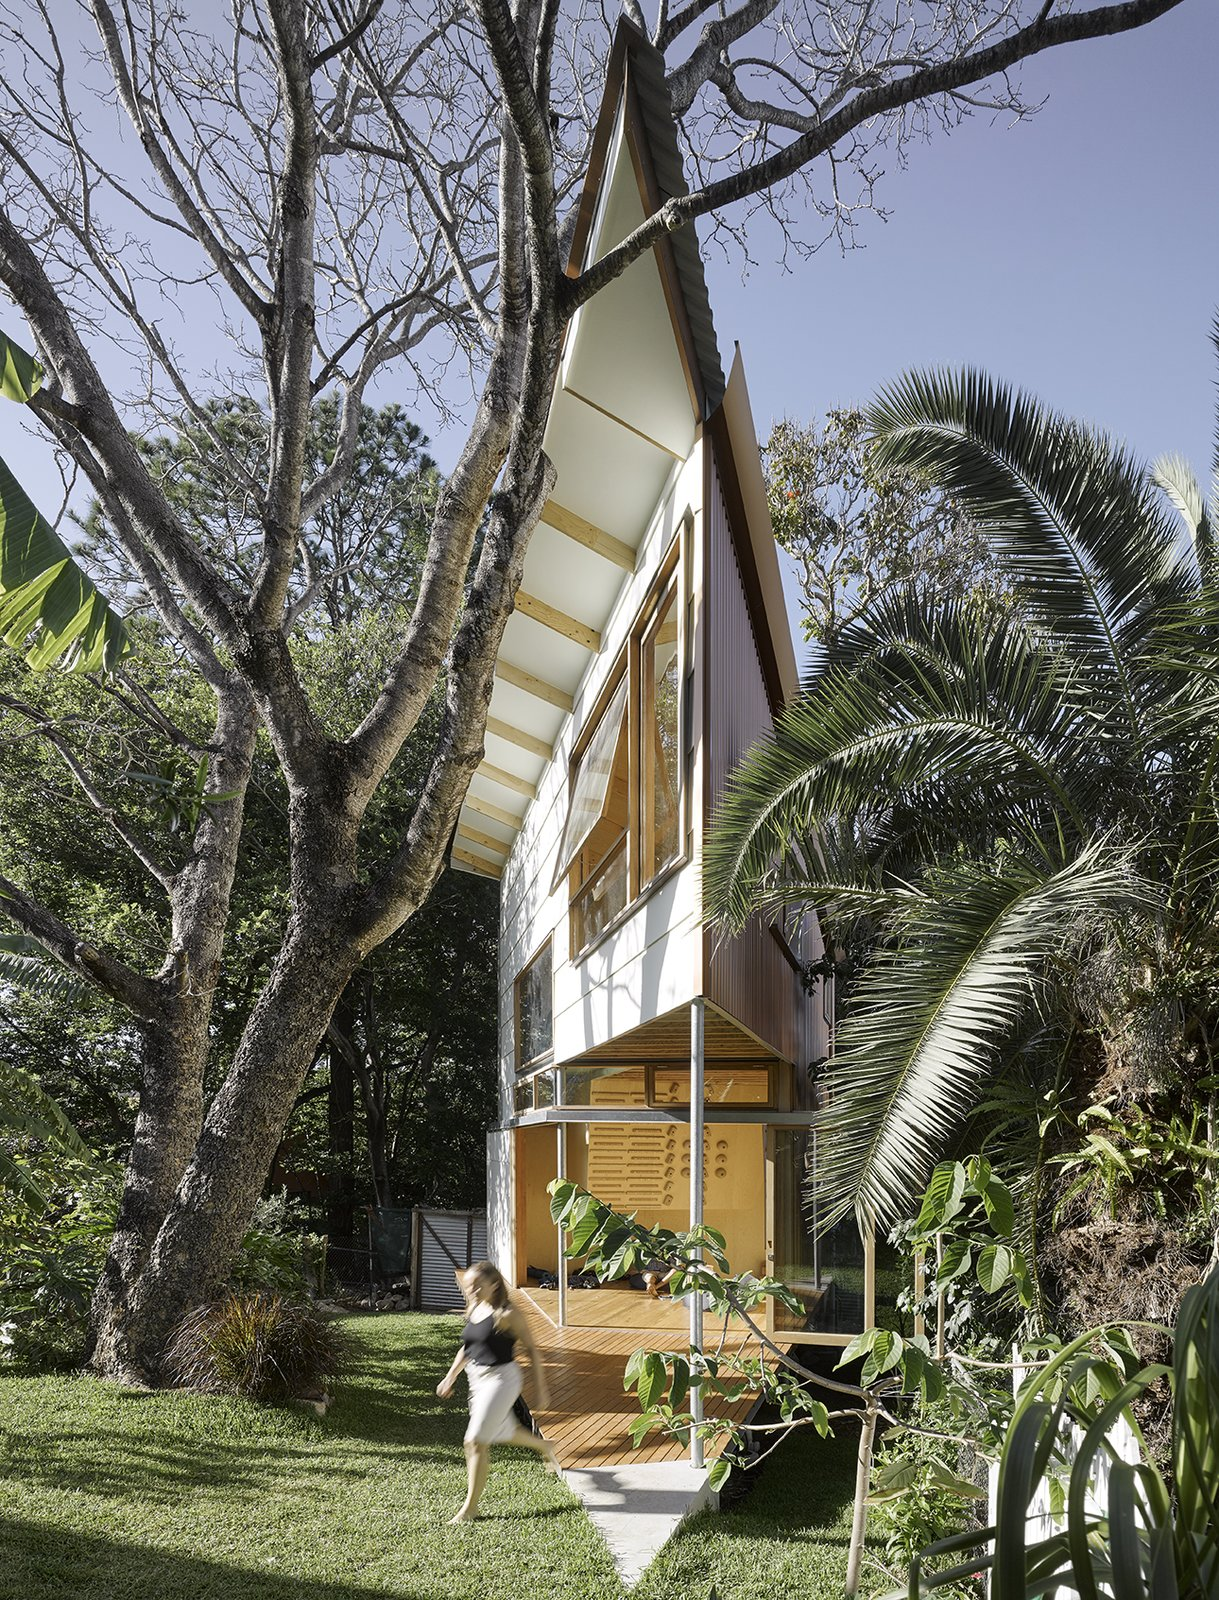 Outdoor, Shrubs, Wood Patio, Porch, Deck, Large Patio, Porch, Deck, Trees, Back Yard, and Grass The western wall of the treehouse is clad in metal to shade the structure from afternoon sun.  Photo 2 of 11 in This Triangular Tree House Adds Whimsy to a Backyard in Australia